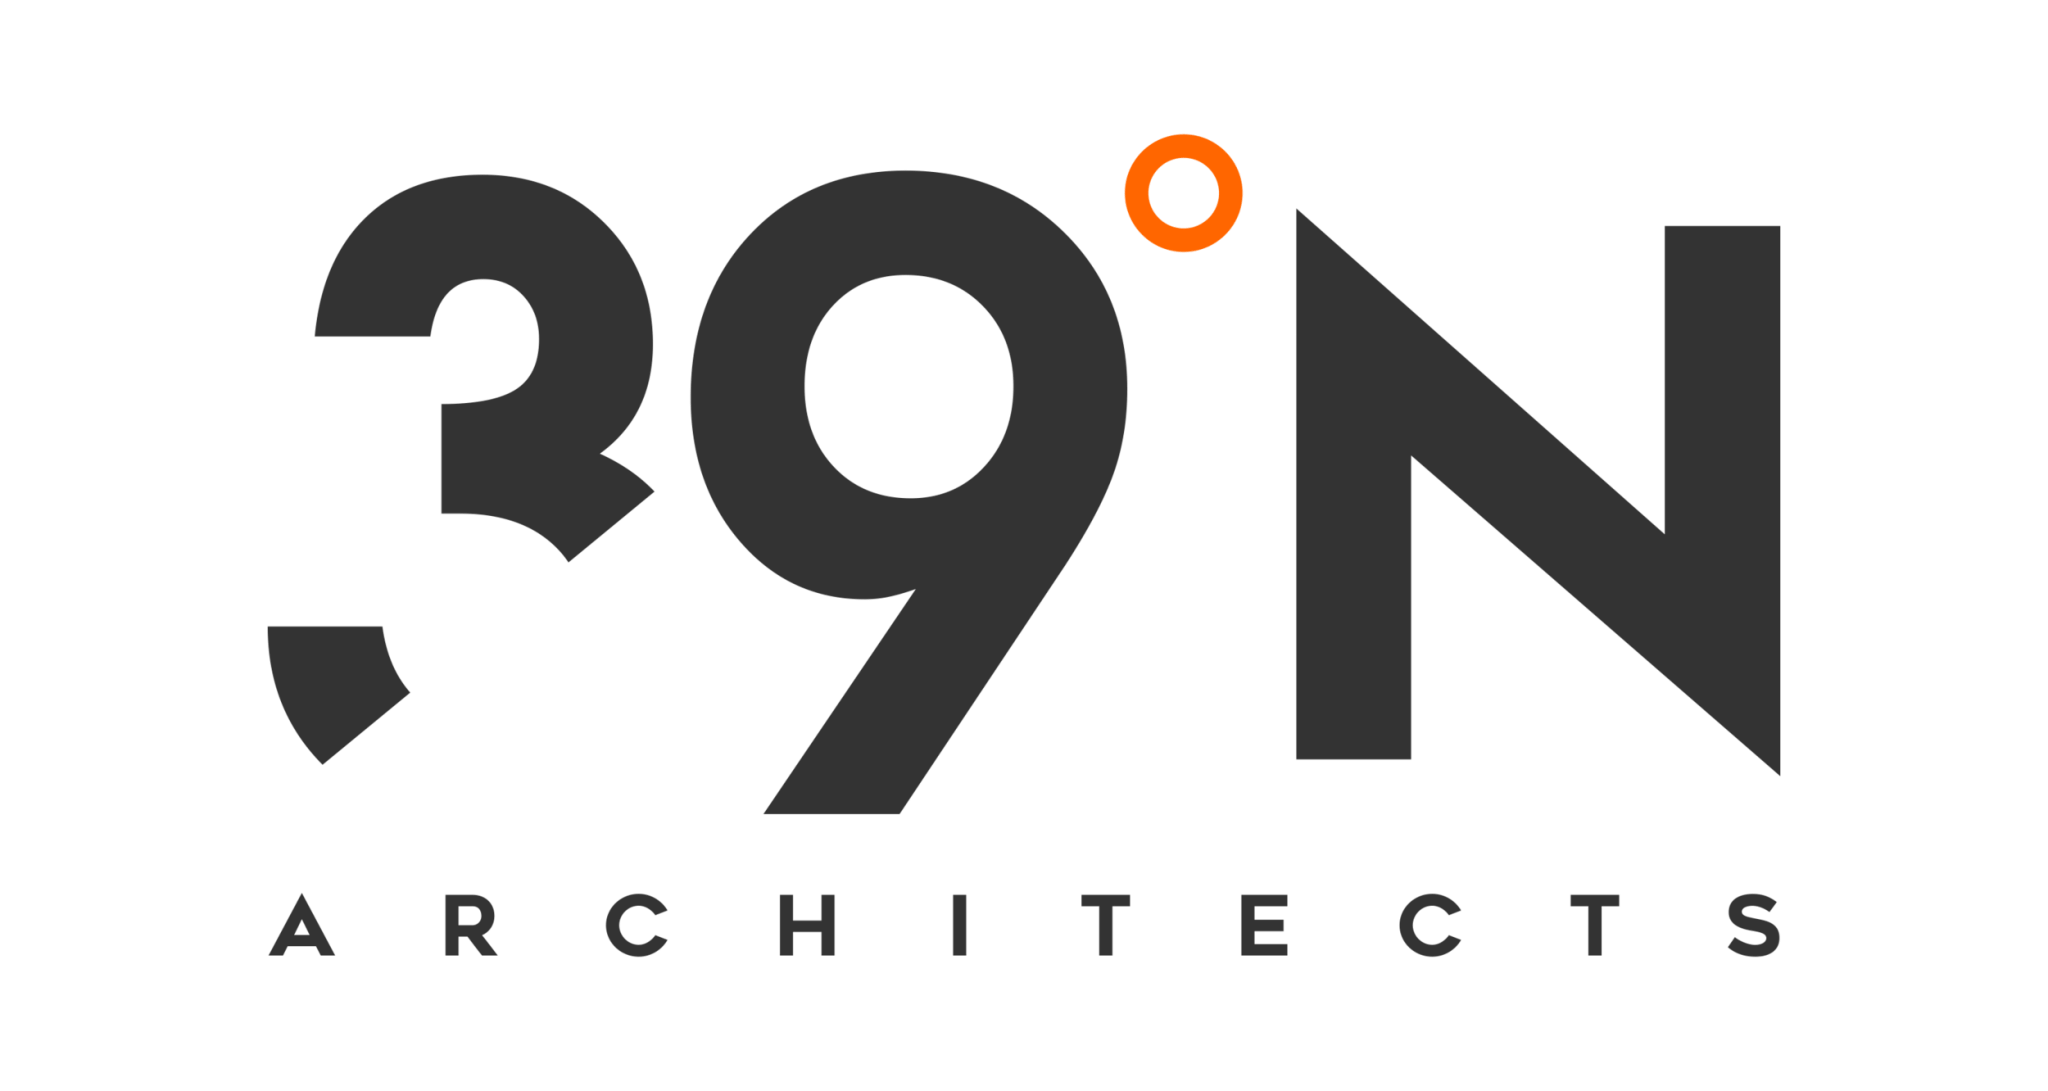 39-North-Architects-Logo